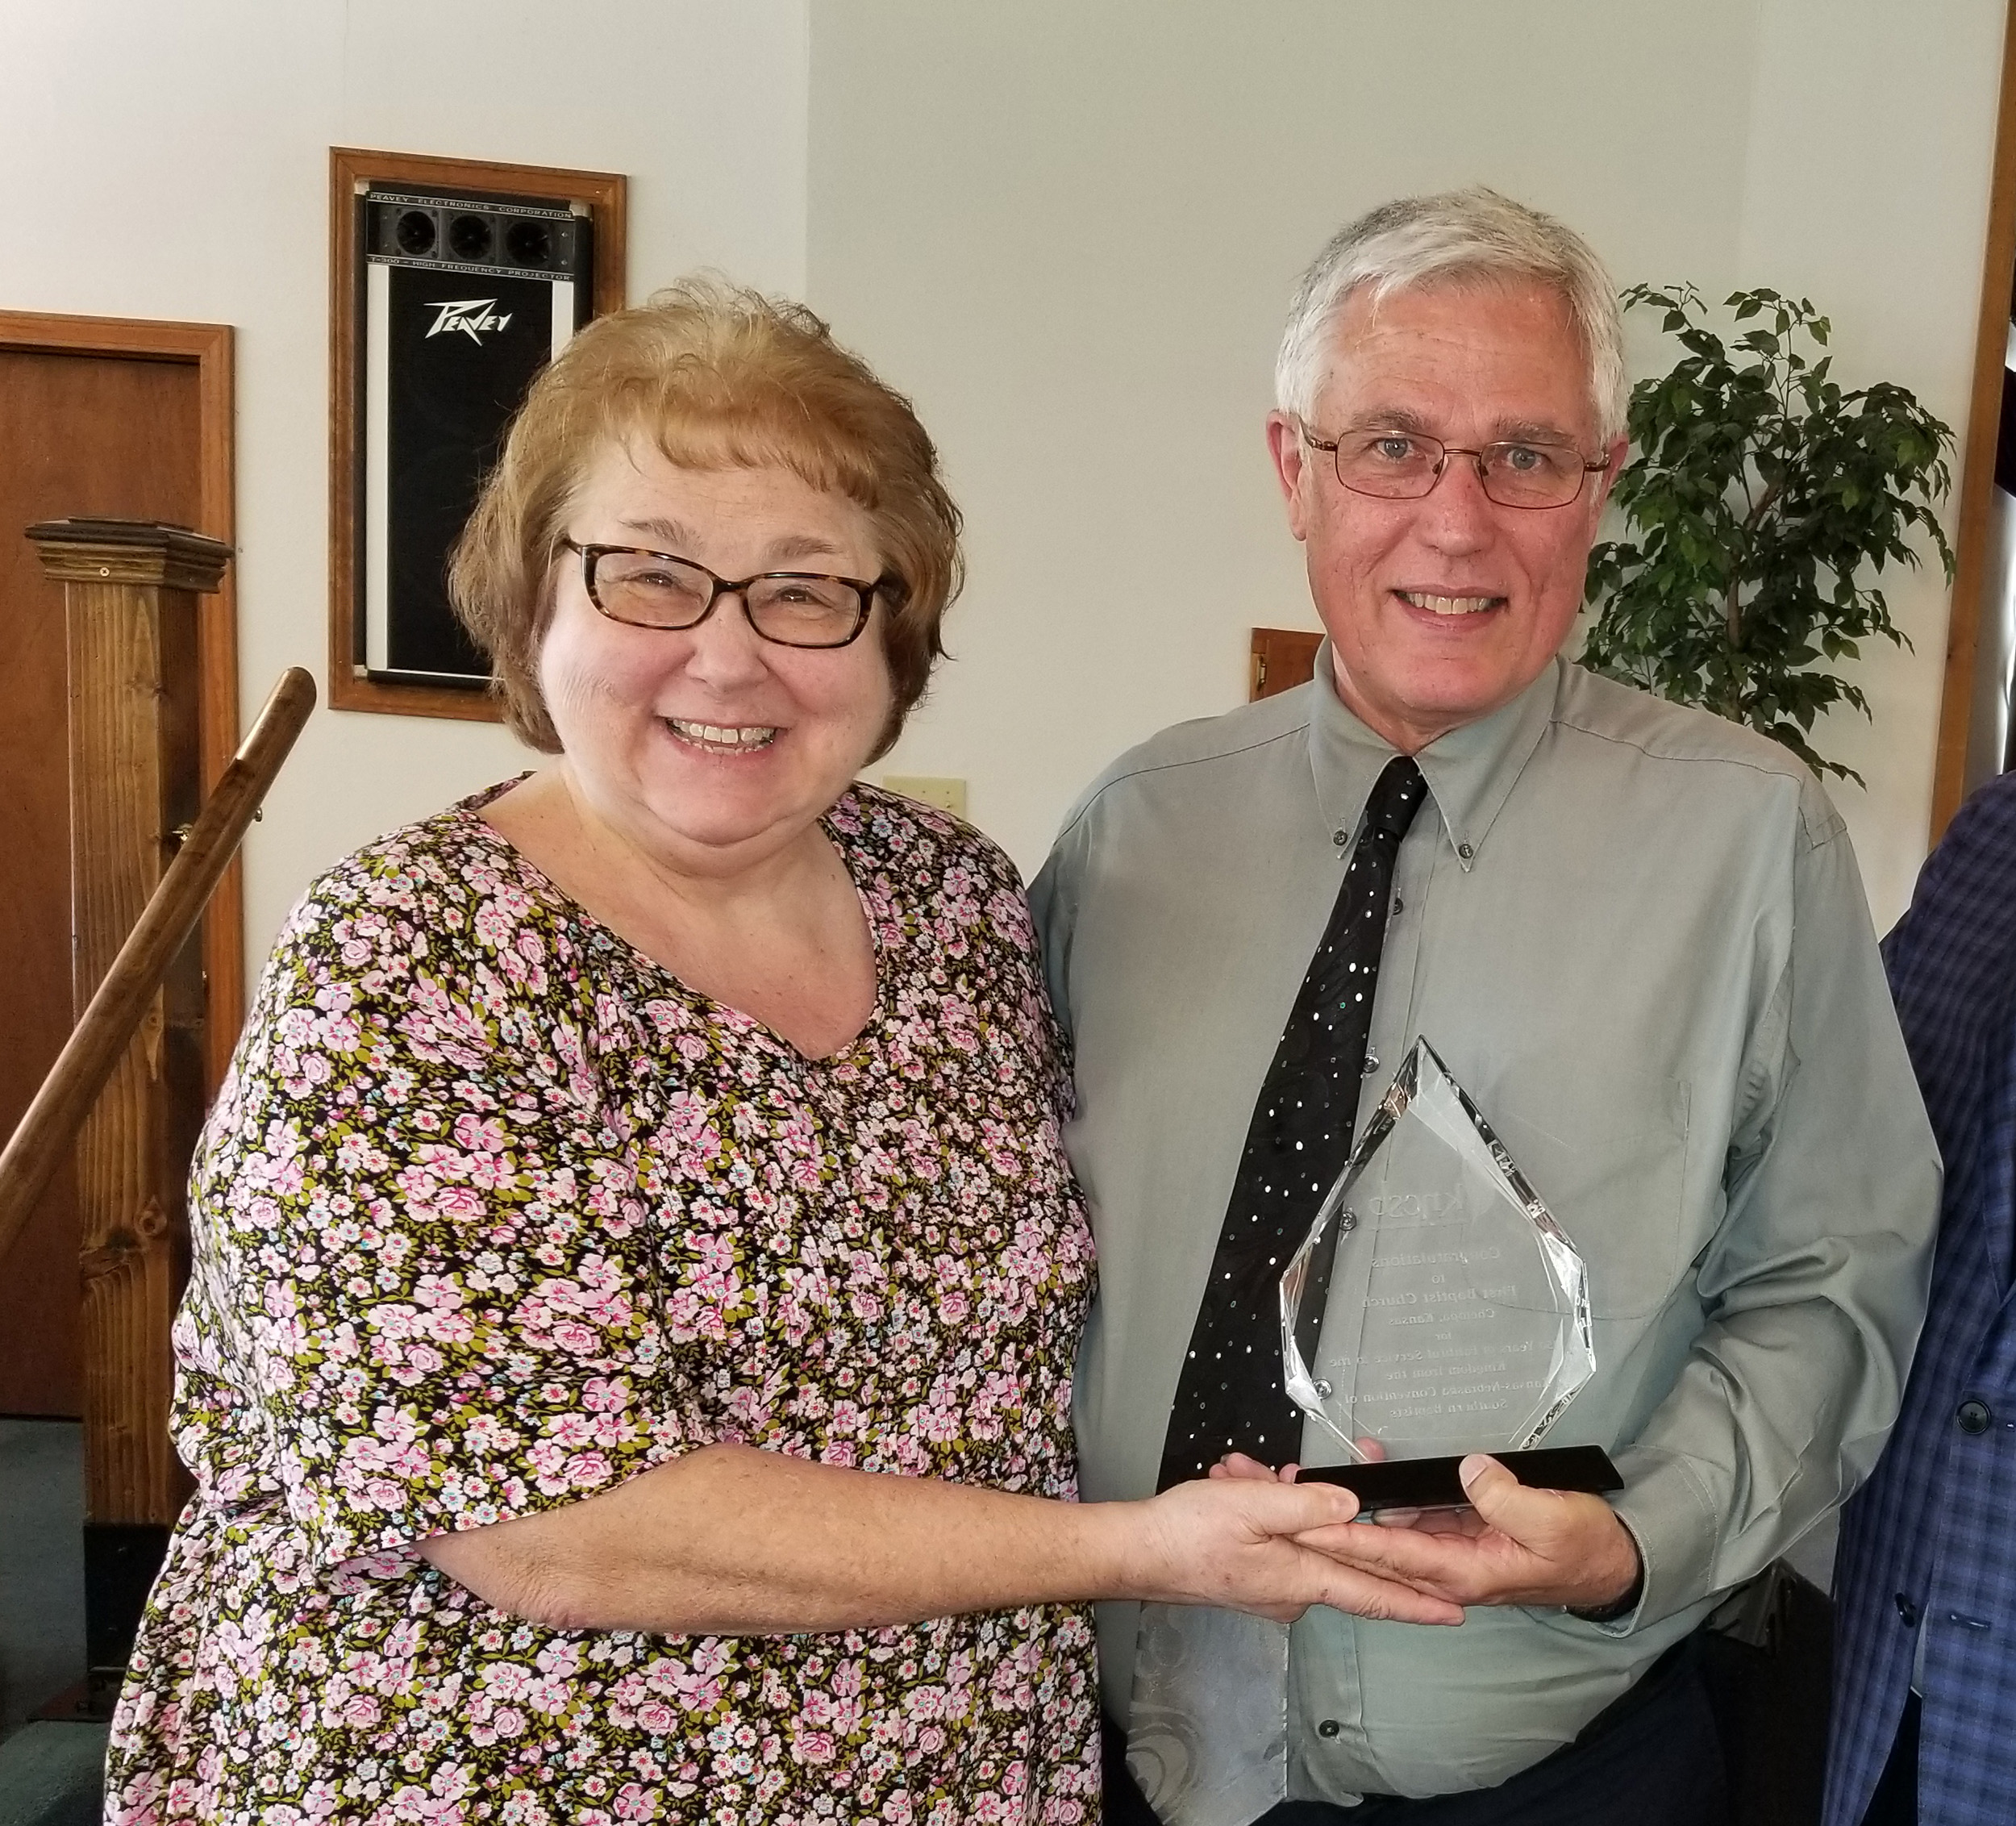 Newmans celebrate 20 years at FBC, Chetopa, Kan.